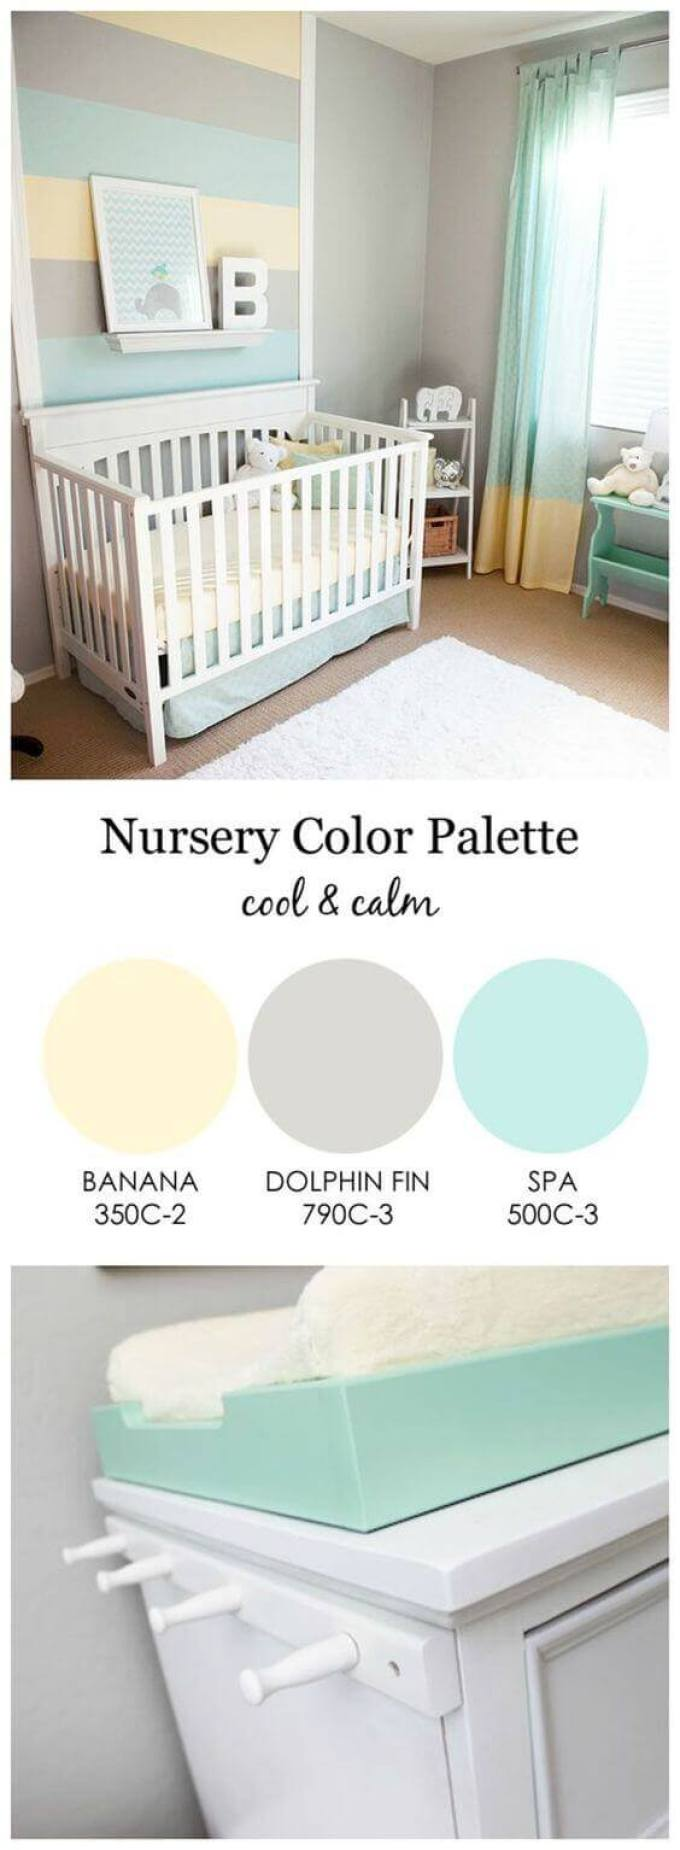 √ 28 Cute Baby Room Ideas: Nursery Decor for Boy, Girl and Unisex